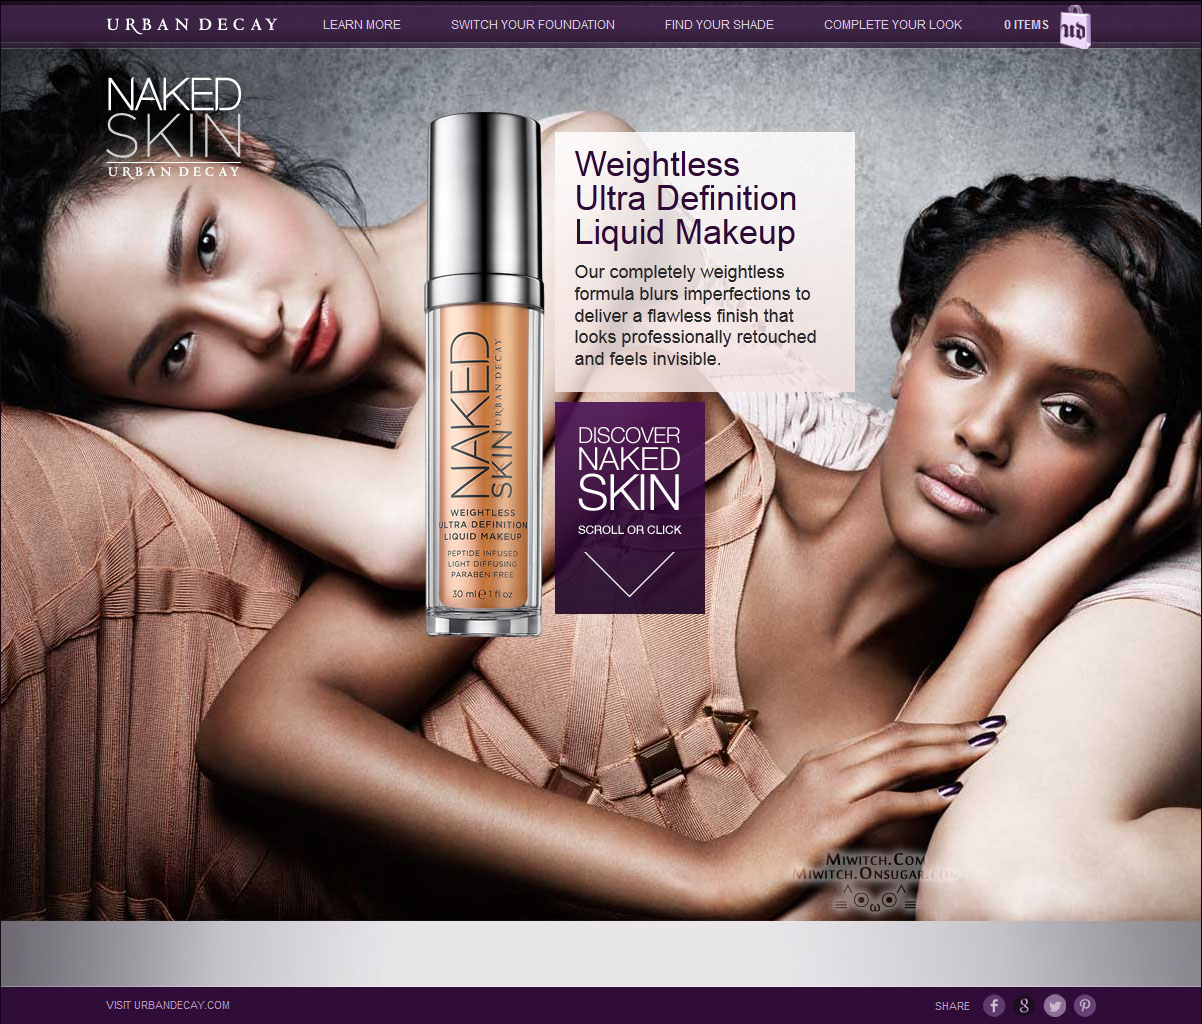 Urban+Decay+Ad+ +lounging Makeup Talk: L'Oreal Set to Purchase Urban Decay Cosmetics